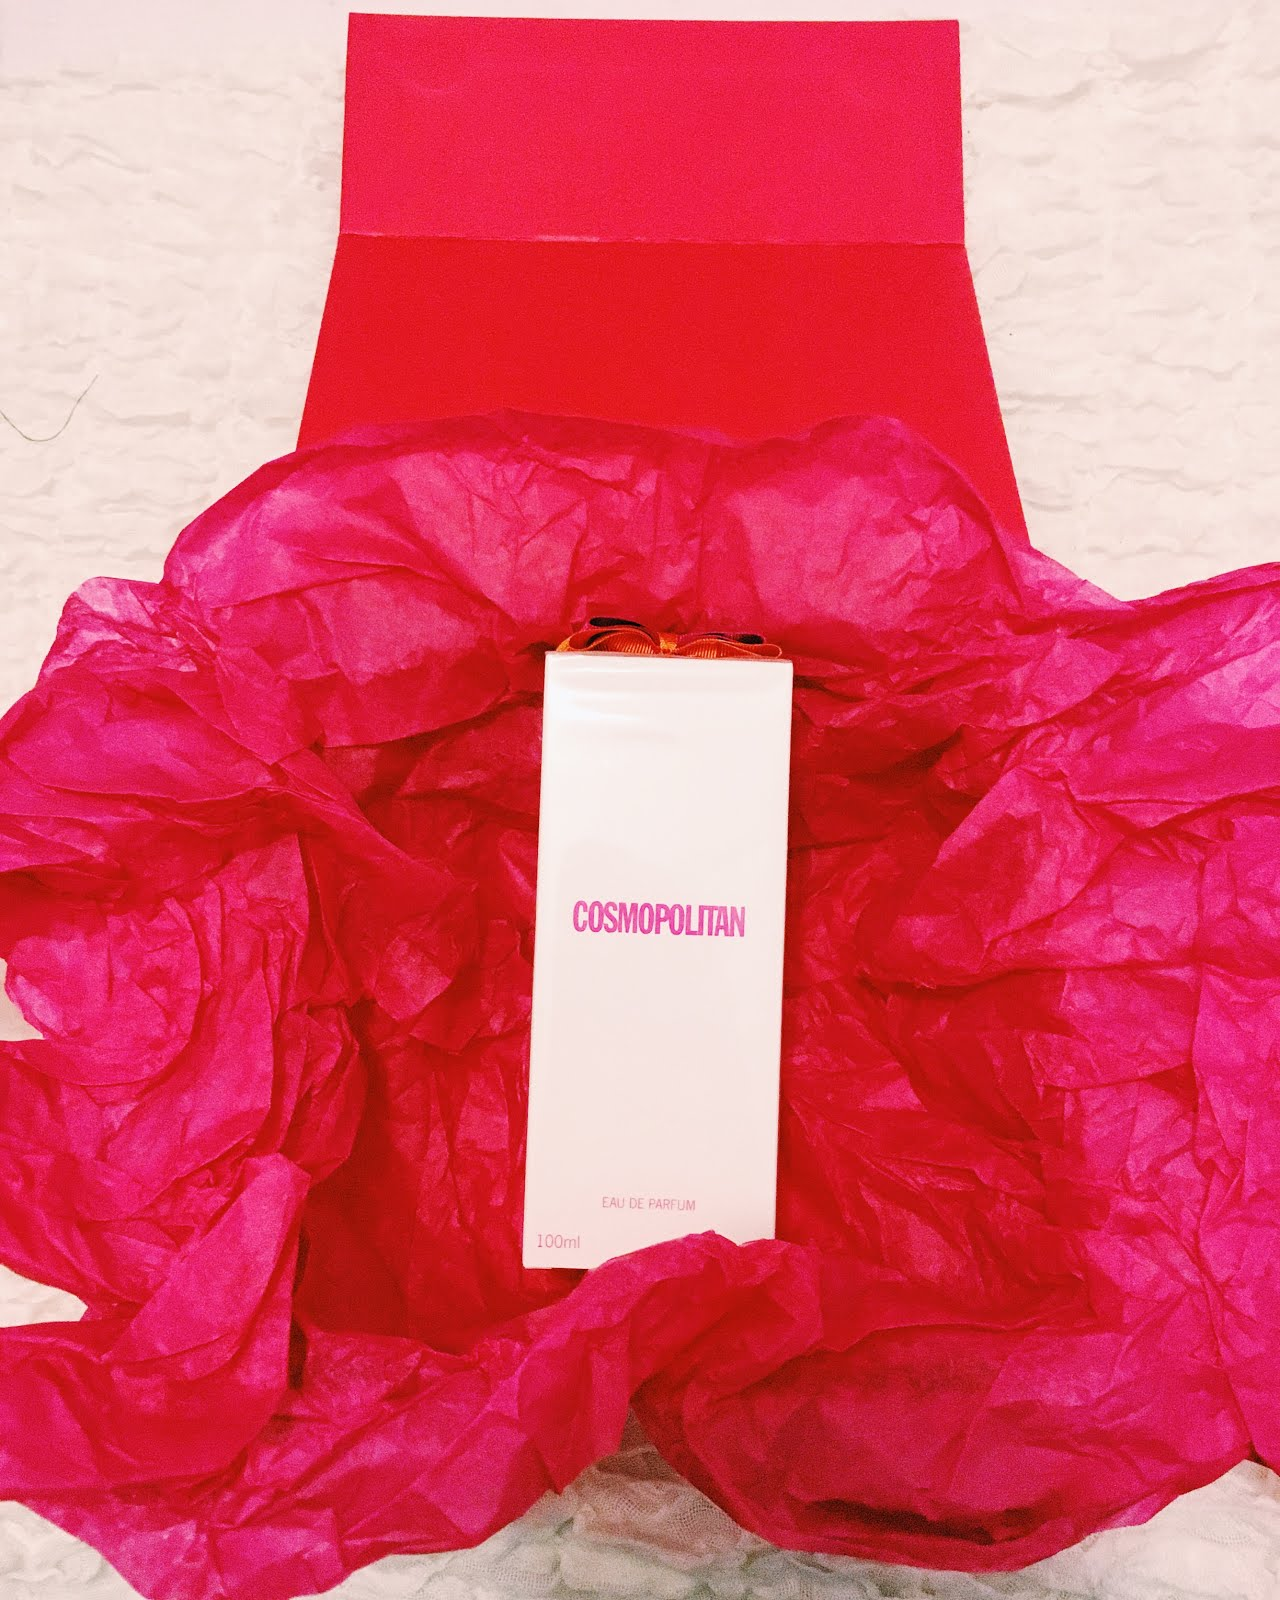 The @cosmo_fragrance Scent Debut & REVIEW